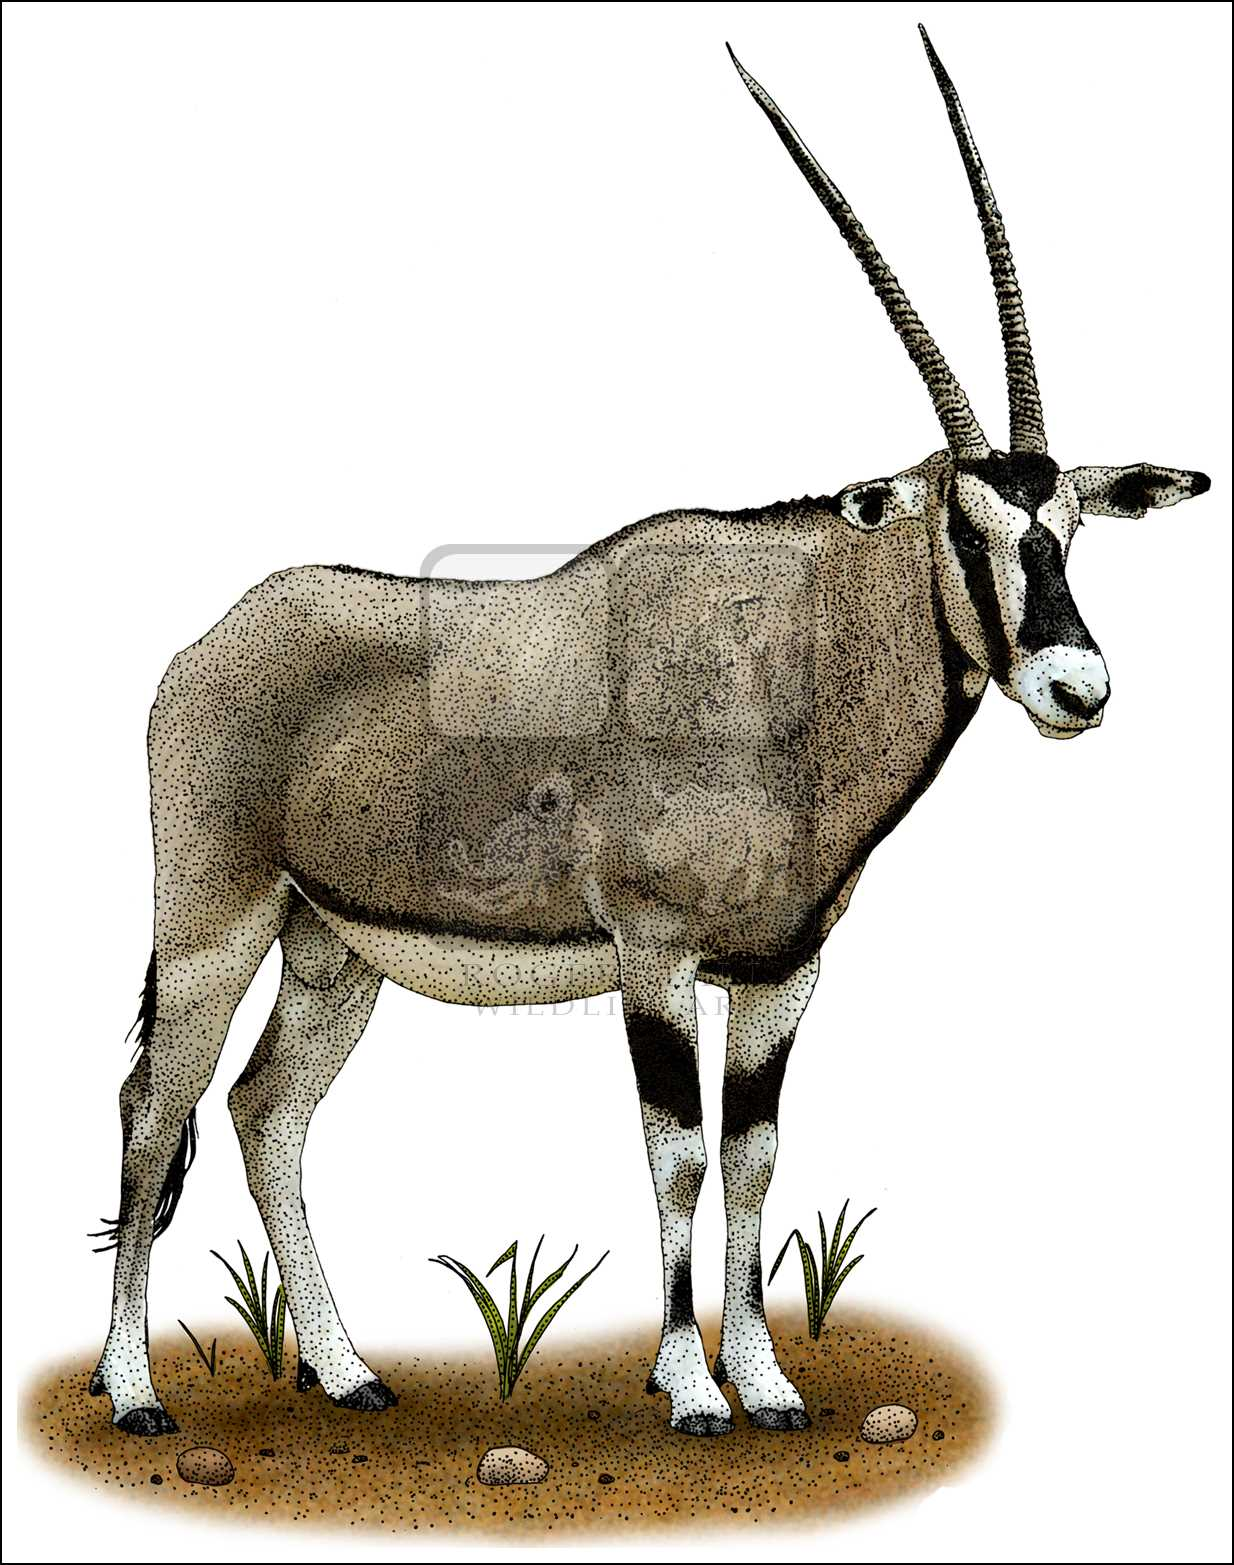 The Best Free Oryx Drawing Images  Download From 16 Free Drawings Of Oryx At Getdrawings